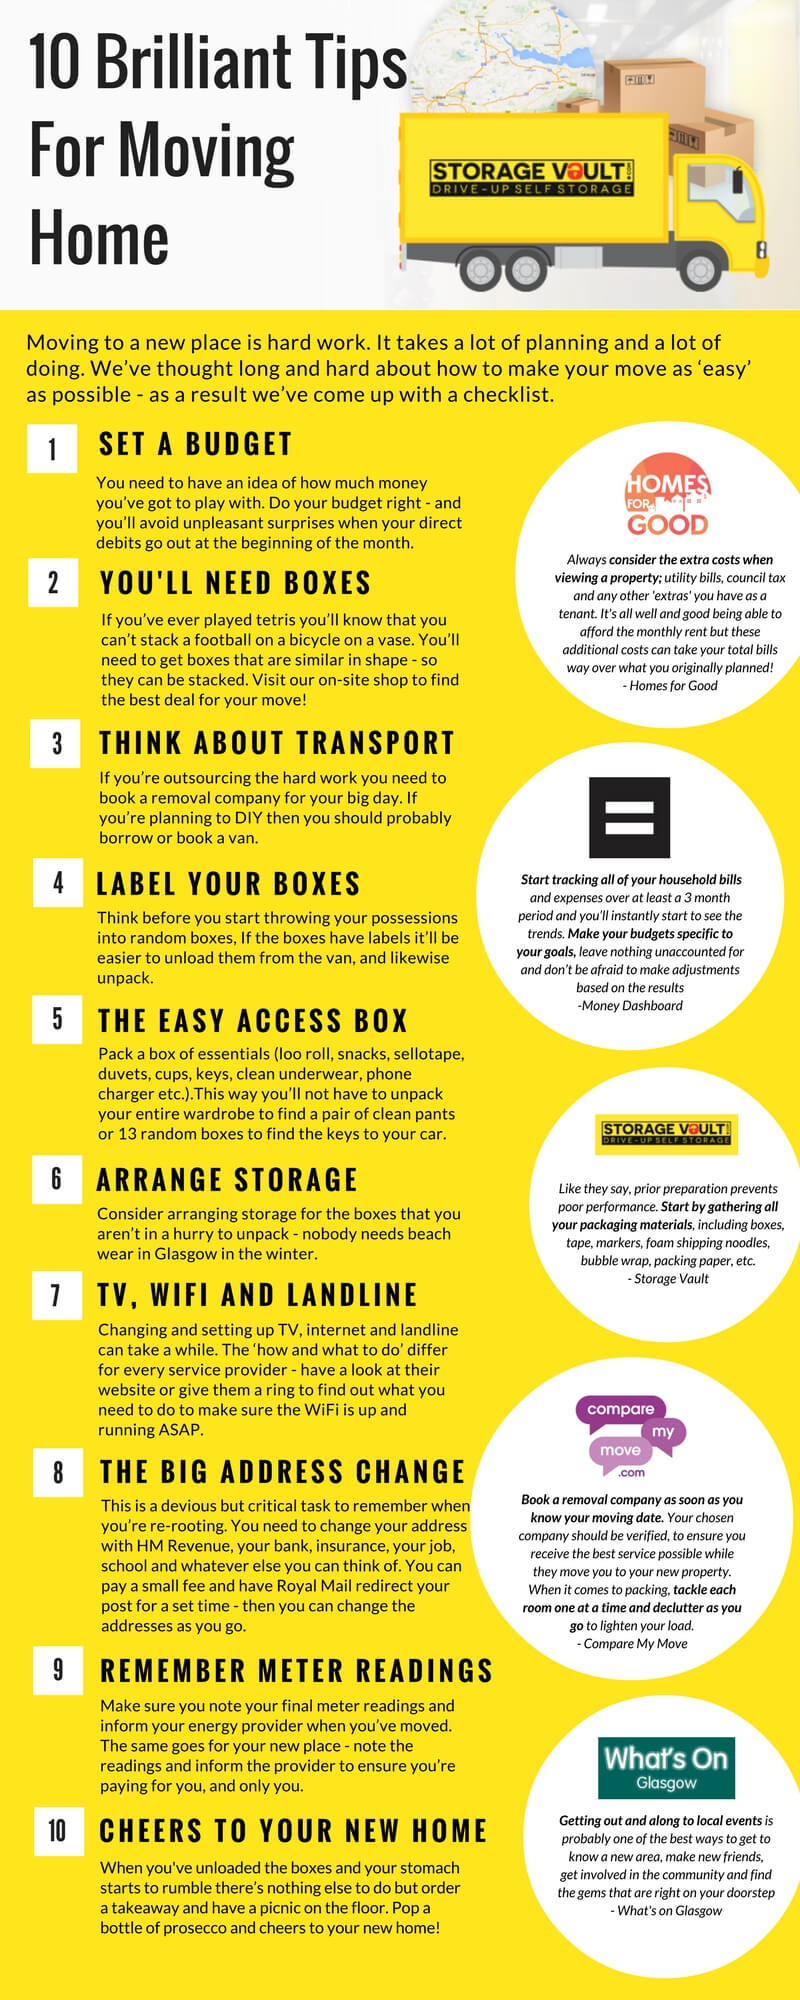 10-tips-storage-vault-infographic-plaza